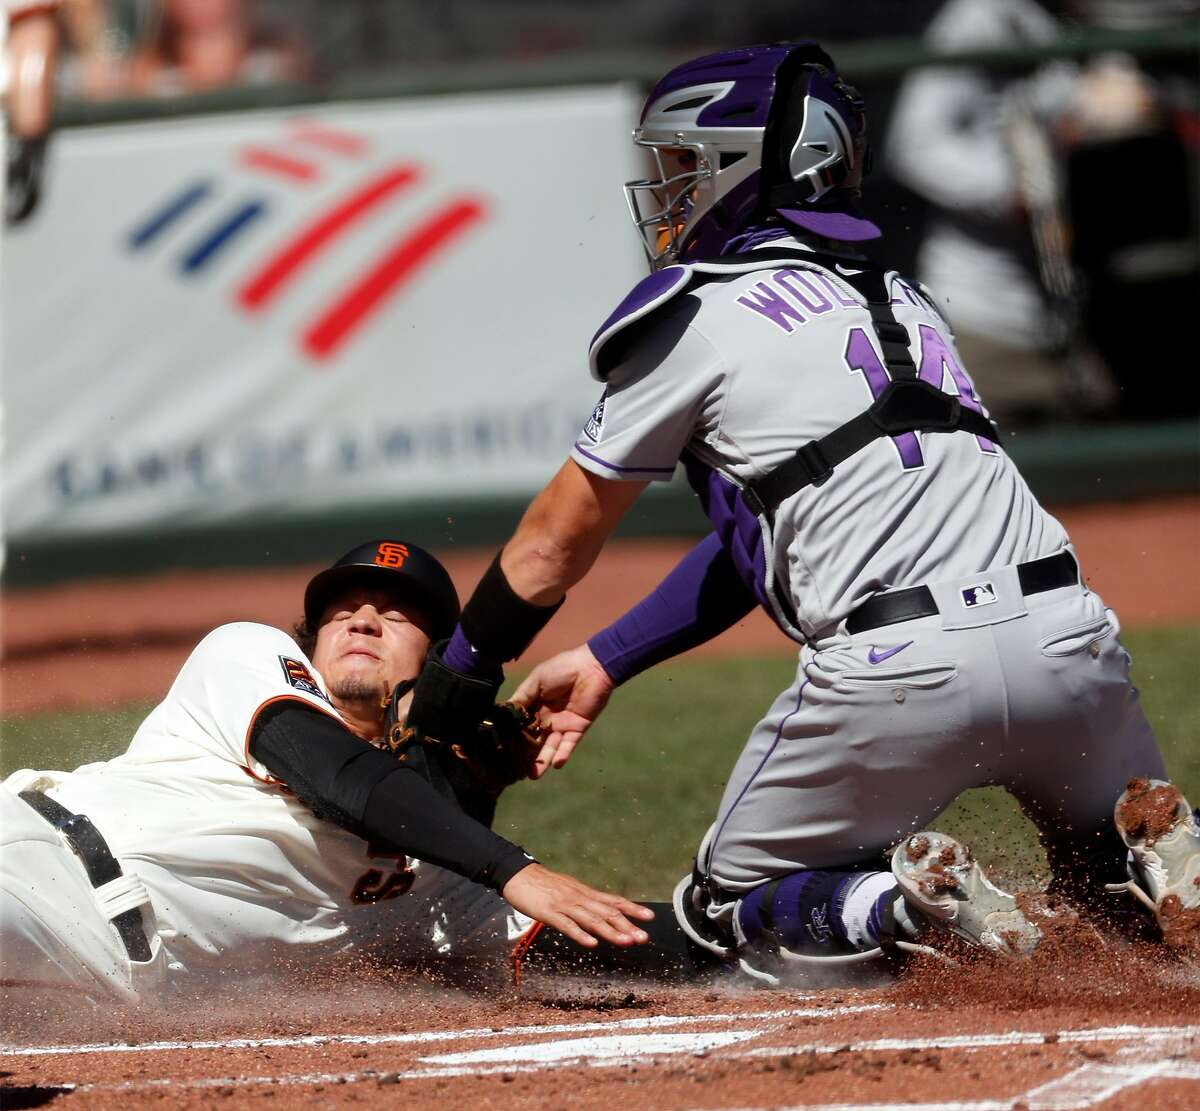 San Francisco Giants' Wilmer Flores is tagged out at home plate by Colorado Rockies' Tony Wolters after an Evan Longoria grounder in 1st inning during MLB game at Oracle Park in San Francisco, Calif., on Thursday, September 24, 2020.